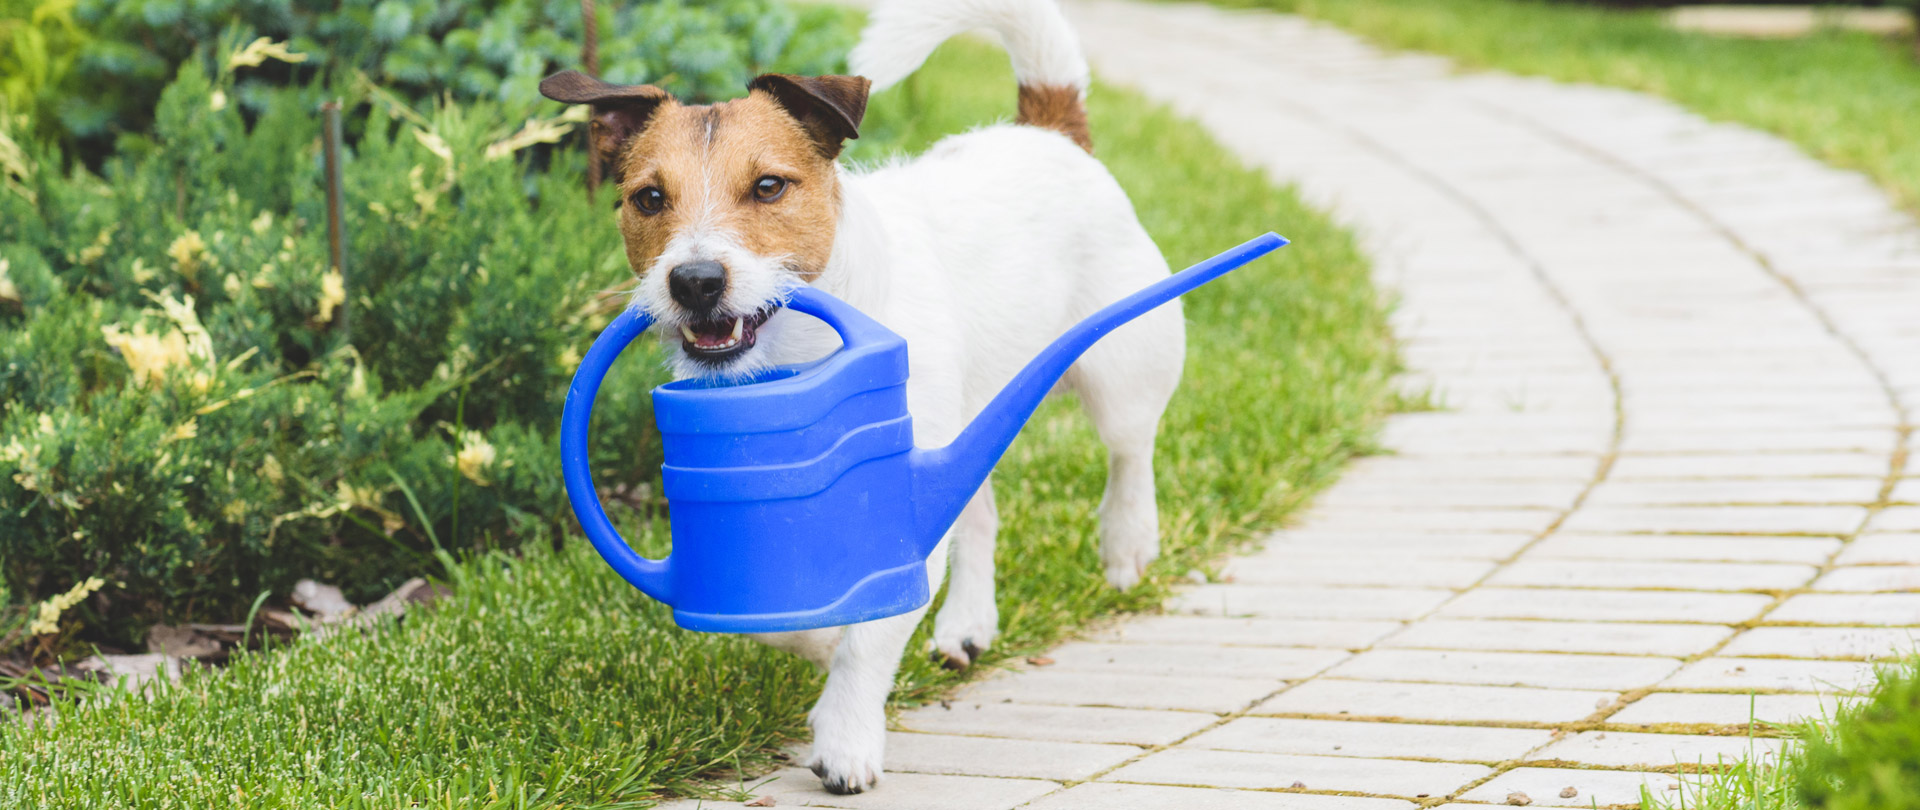 Dog and Watering Can